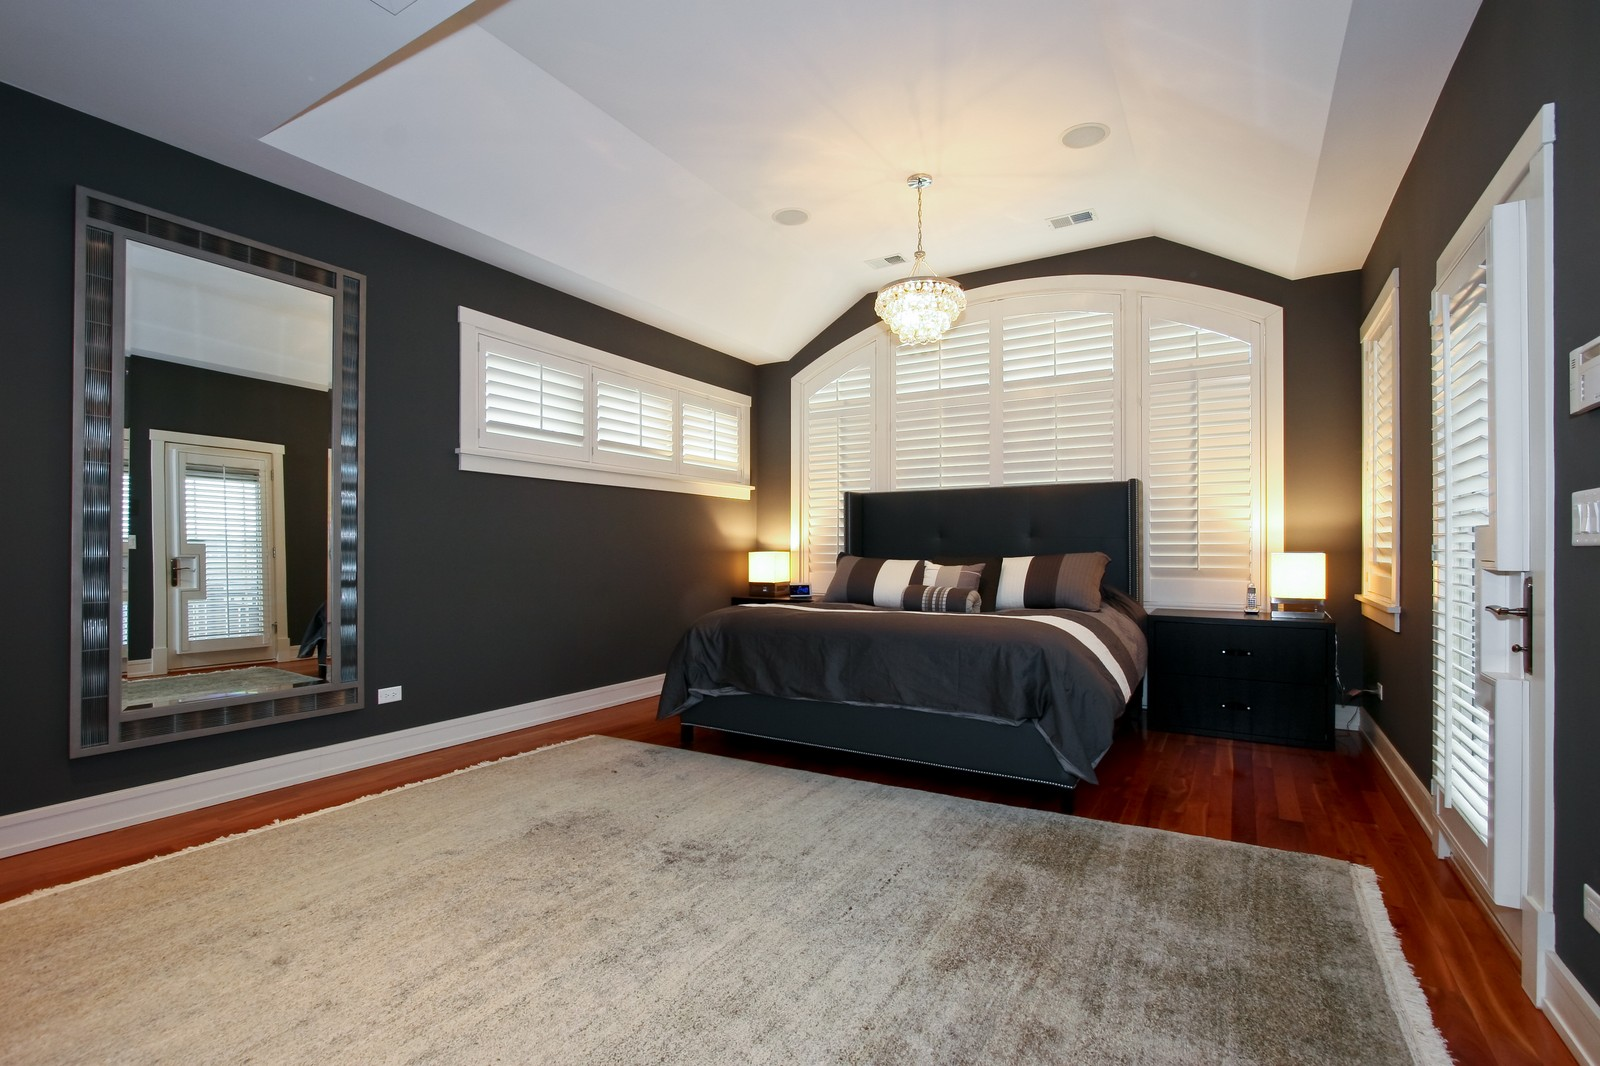 Real Estate Photography - 444 W. 38th Street, Chicago, IL, 60609 - Master Bedroom